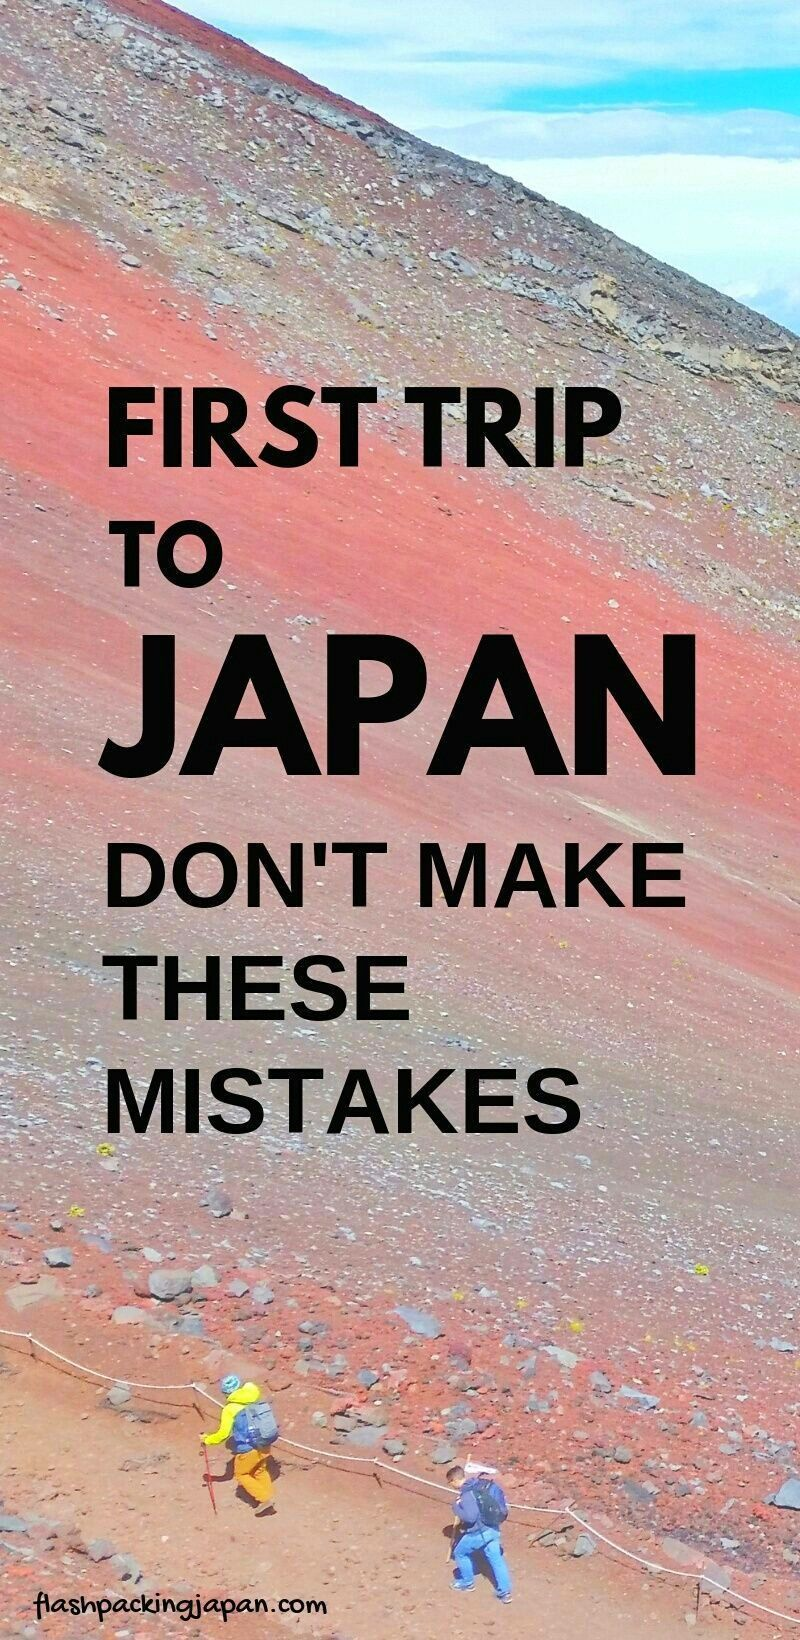 backpacking japan travel tips for east asia. tokyo, kyoto, osaka, nara, hiroshima. best places to visit in japan. best things to do in japan